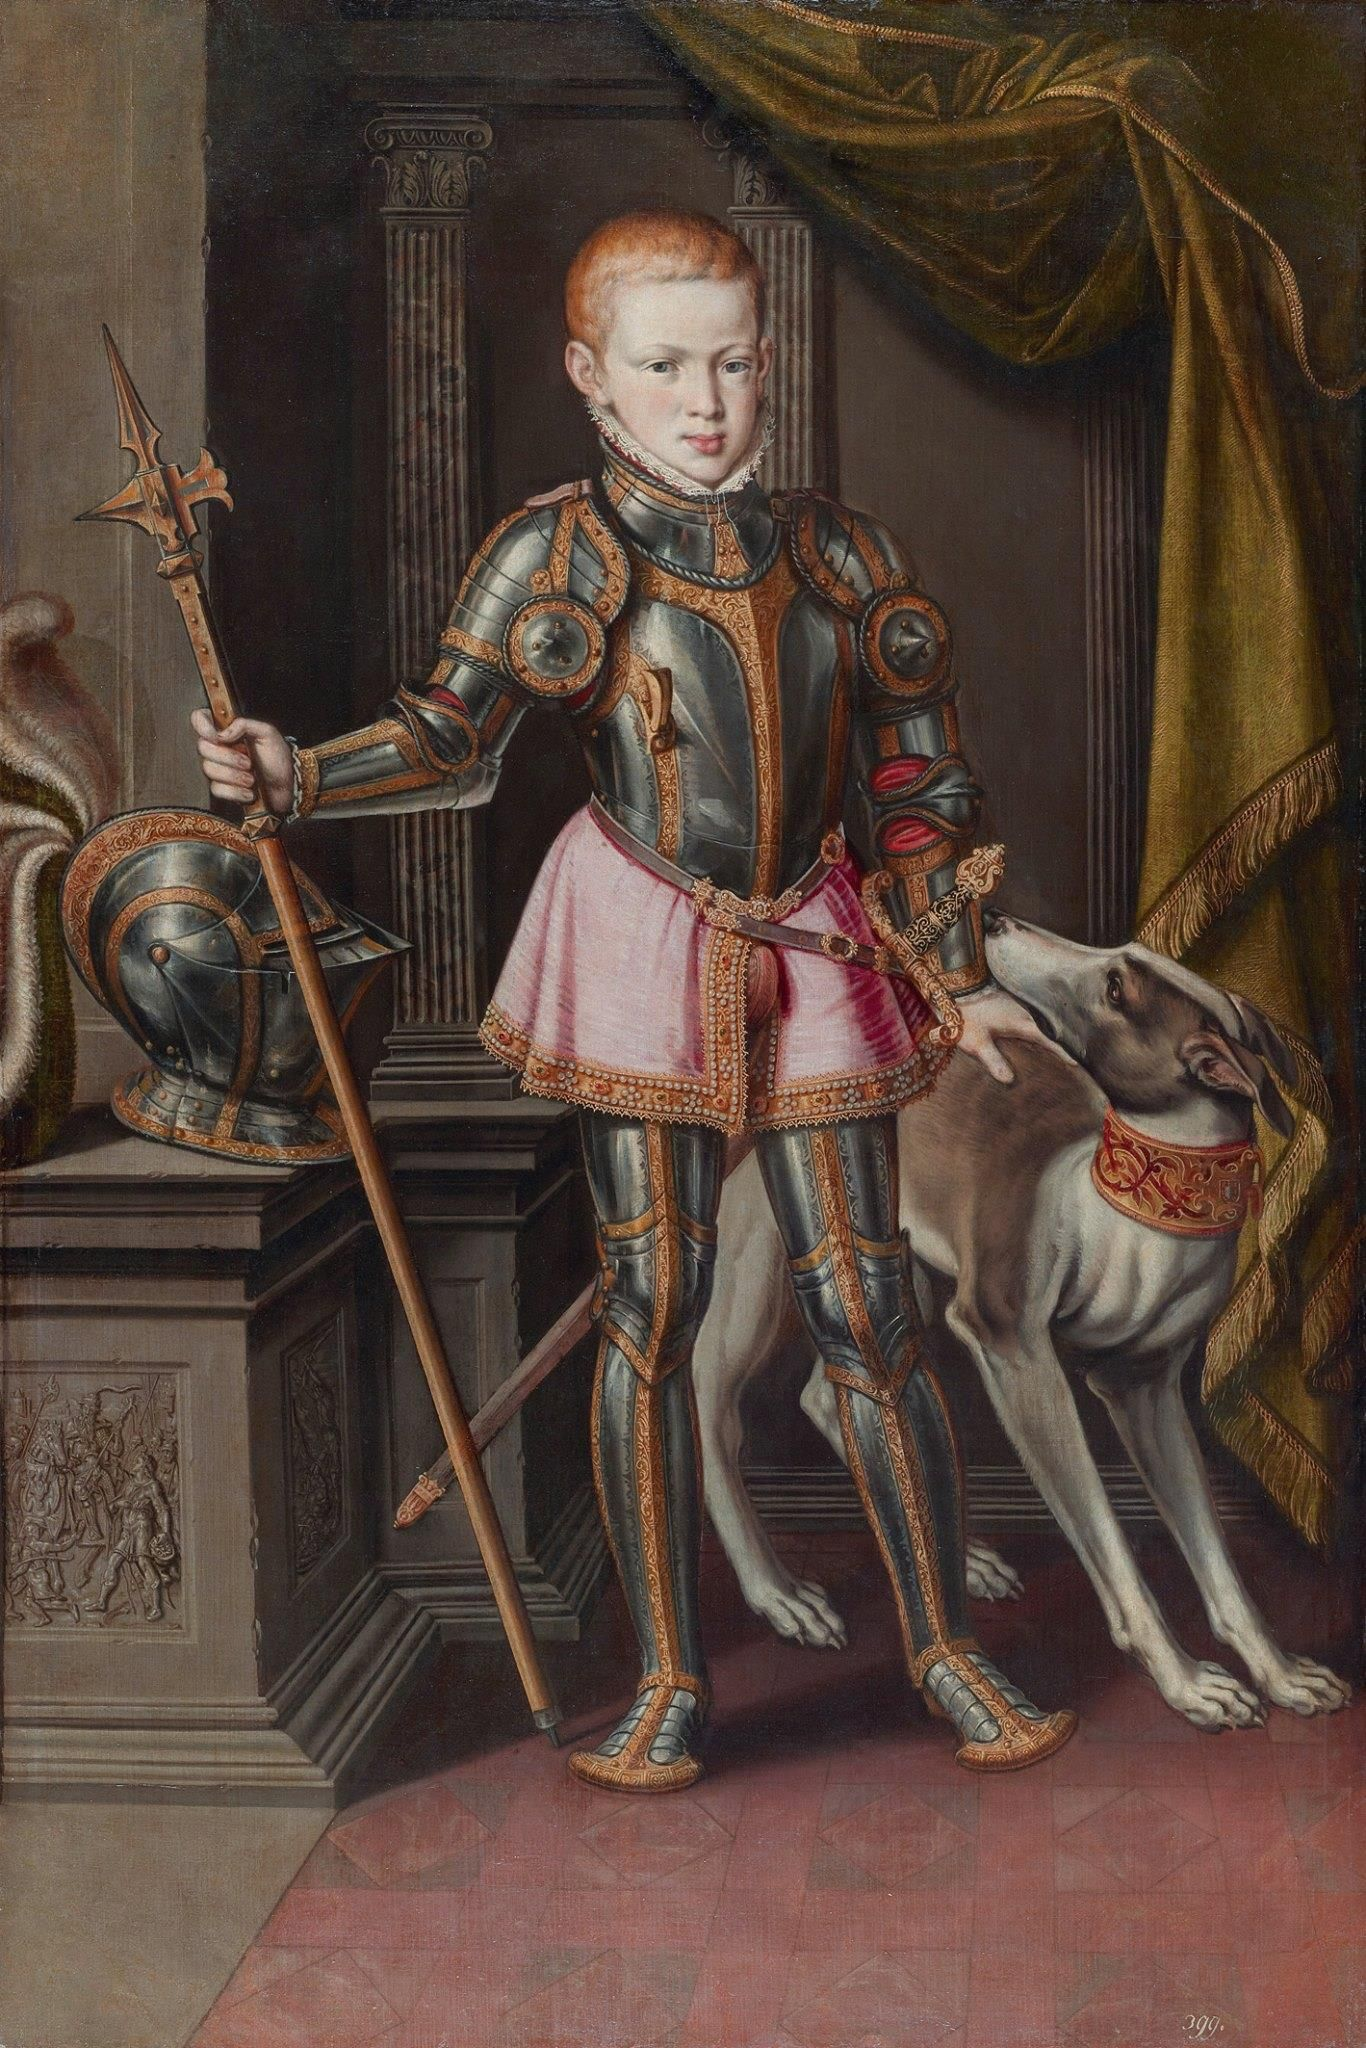 Sebastian I, King of Portugal. Alonso Sánchez Coello, 1562